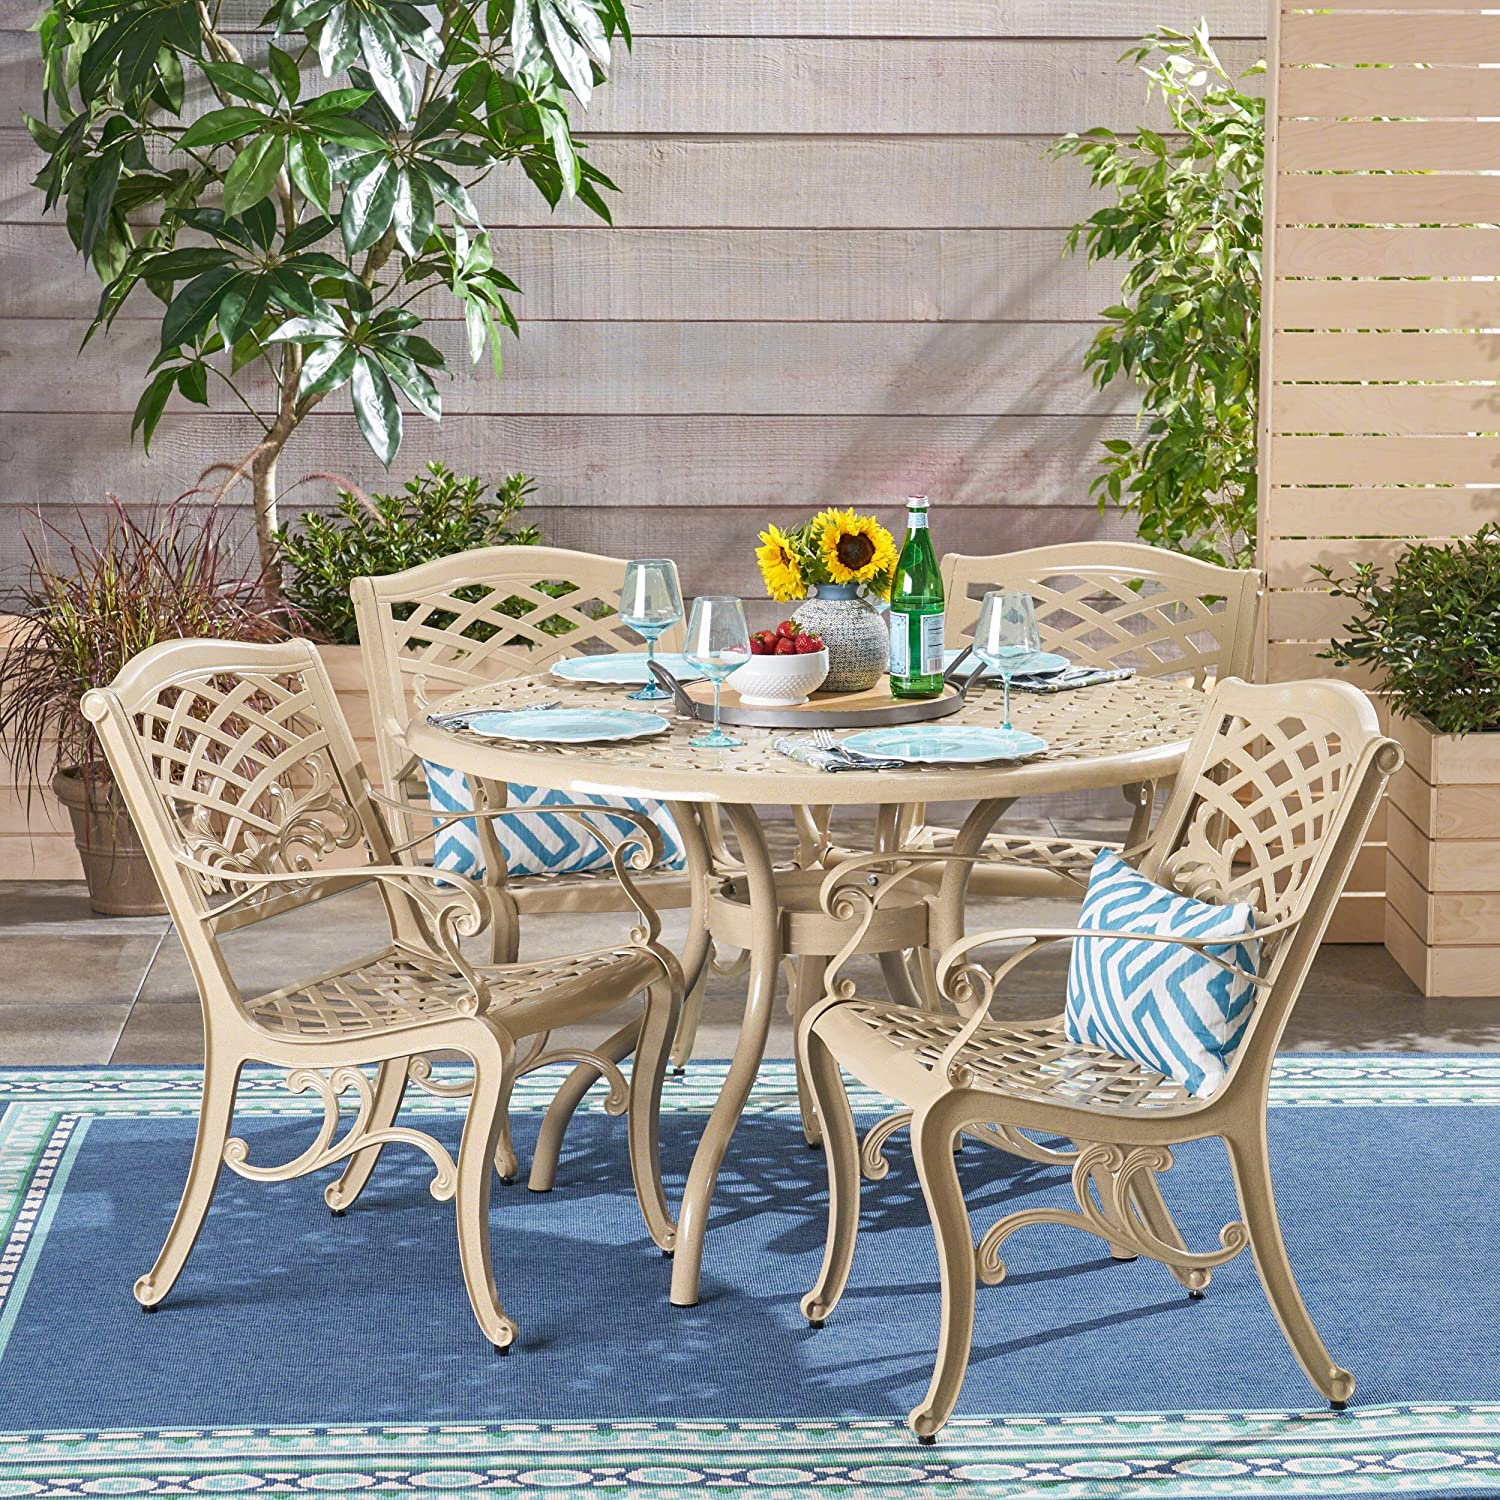 Christopher Knight Home 305695 Vlada Outdoor 5 Piece Cast Aluminum Round Dining Set, Sand